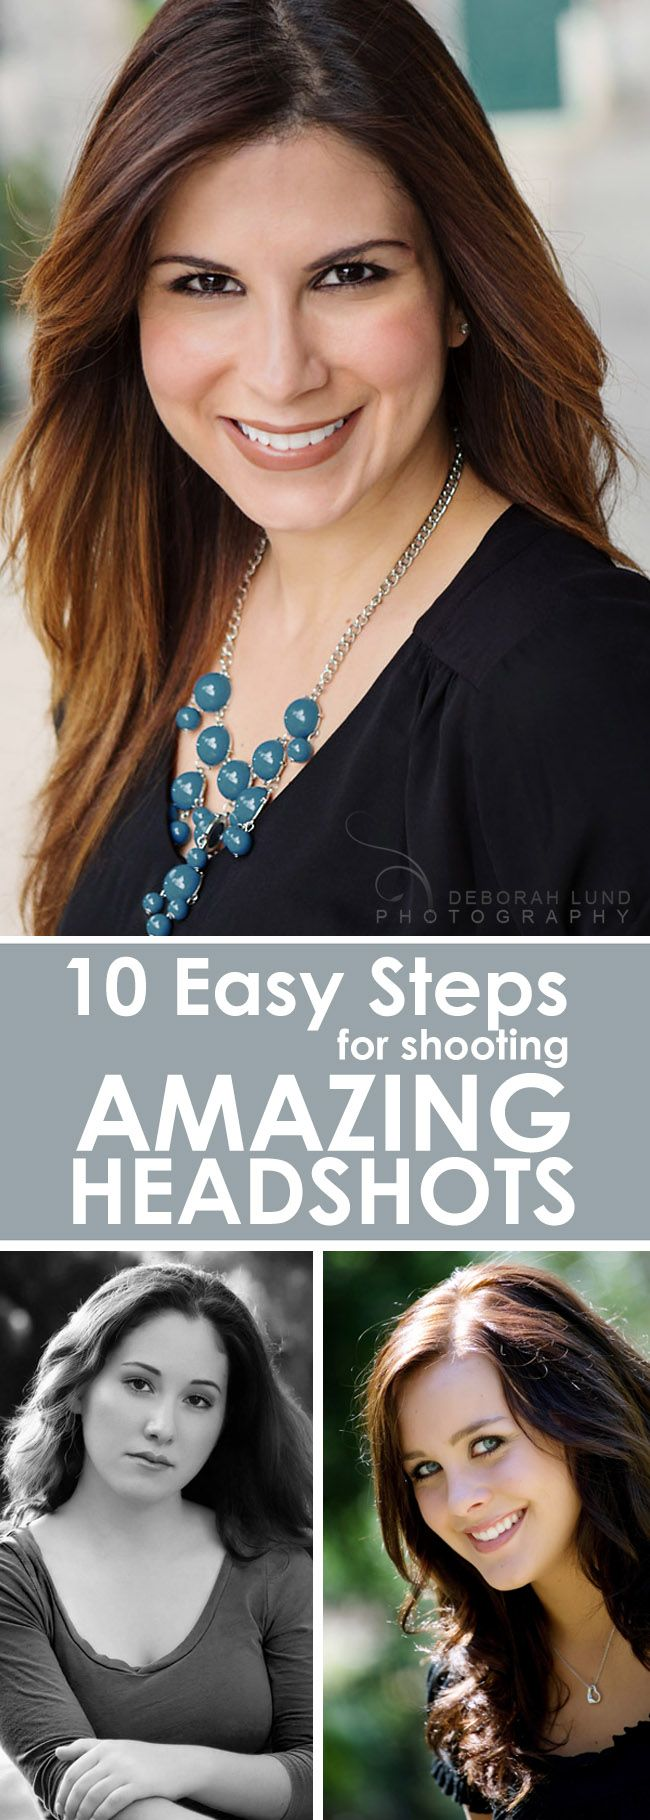 10 easy steps to take professional looking headshots with any DSLR & natural…